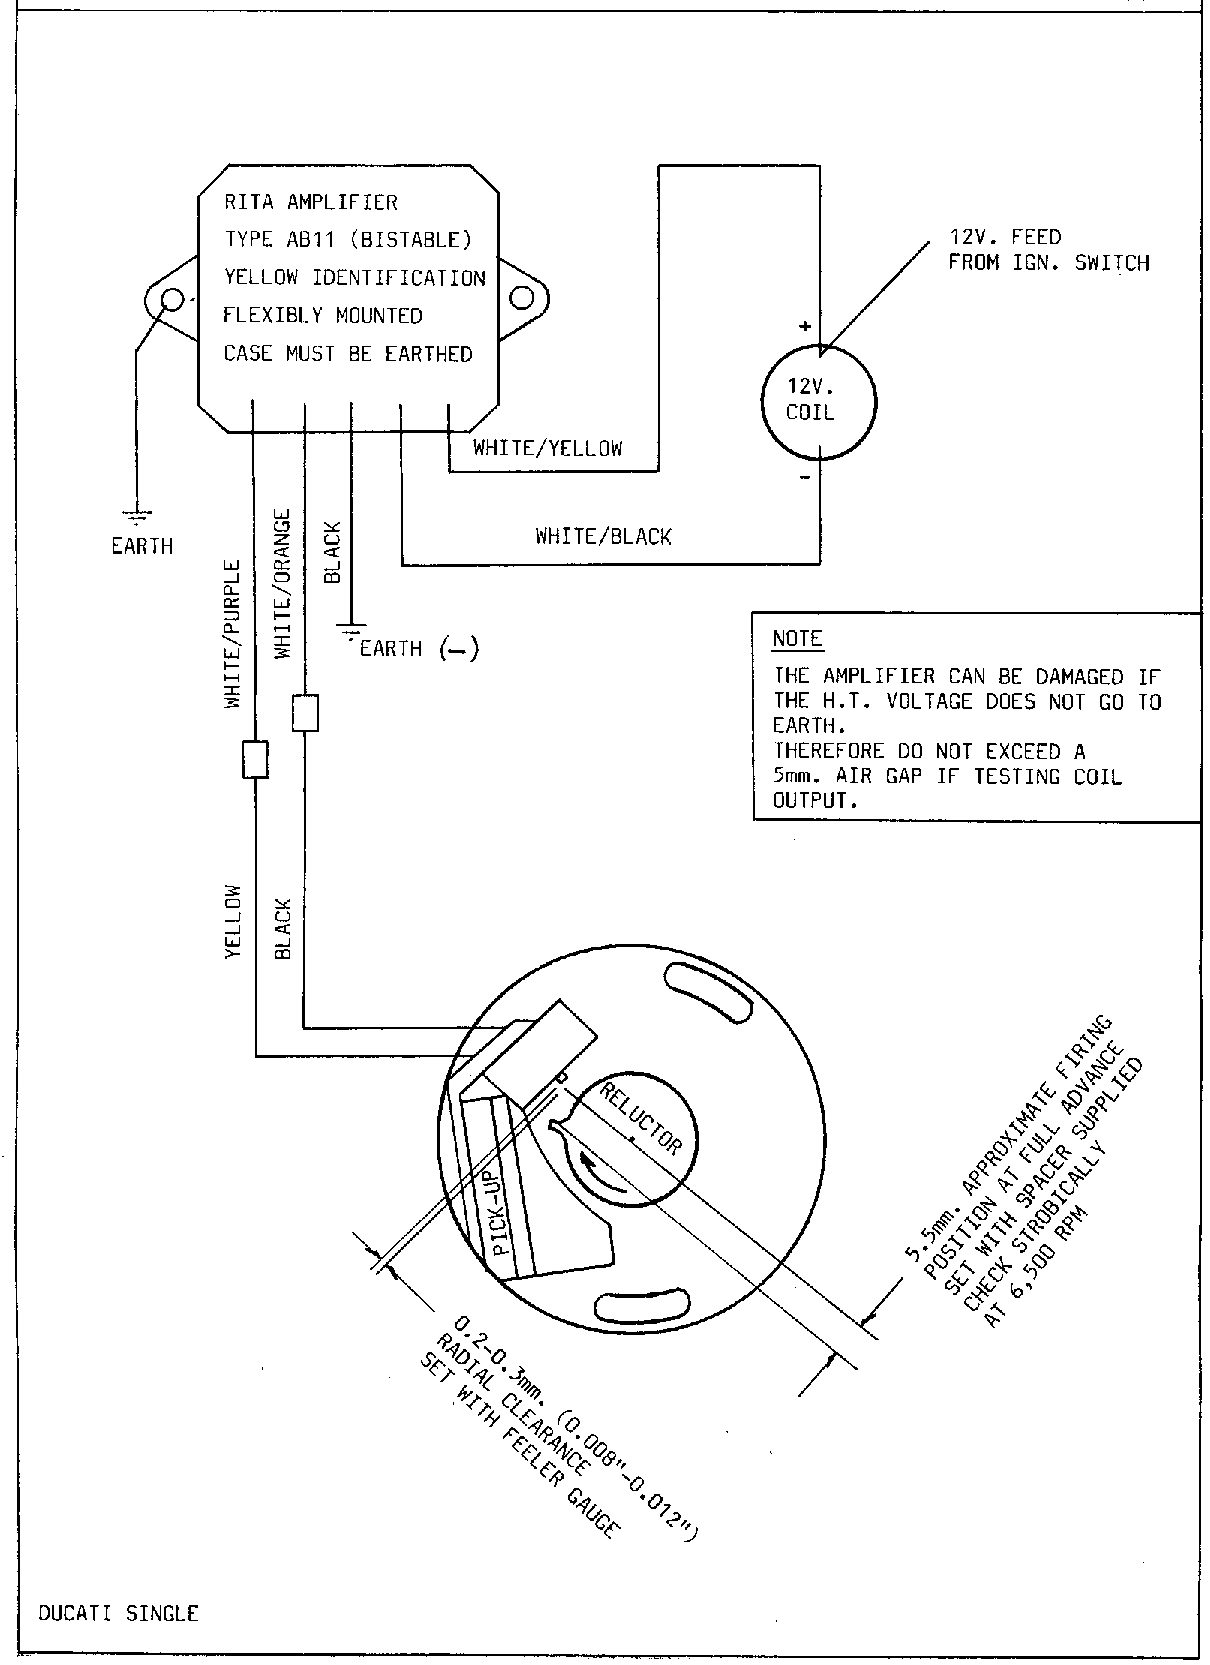 Diagram Lucas Rita Electronic Ignition Wiring Diagram